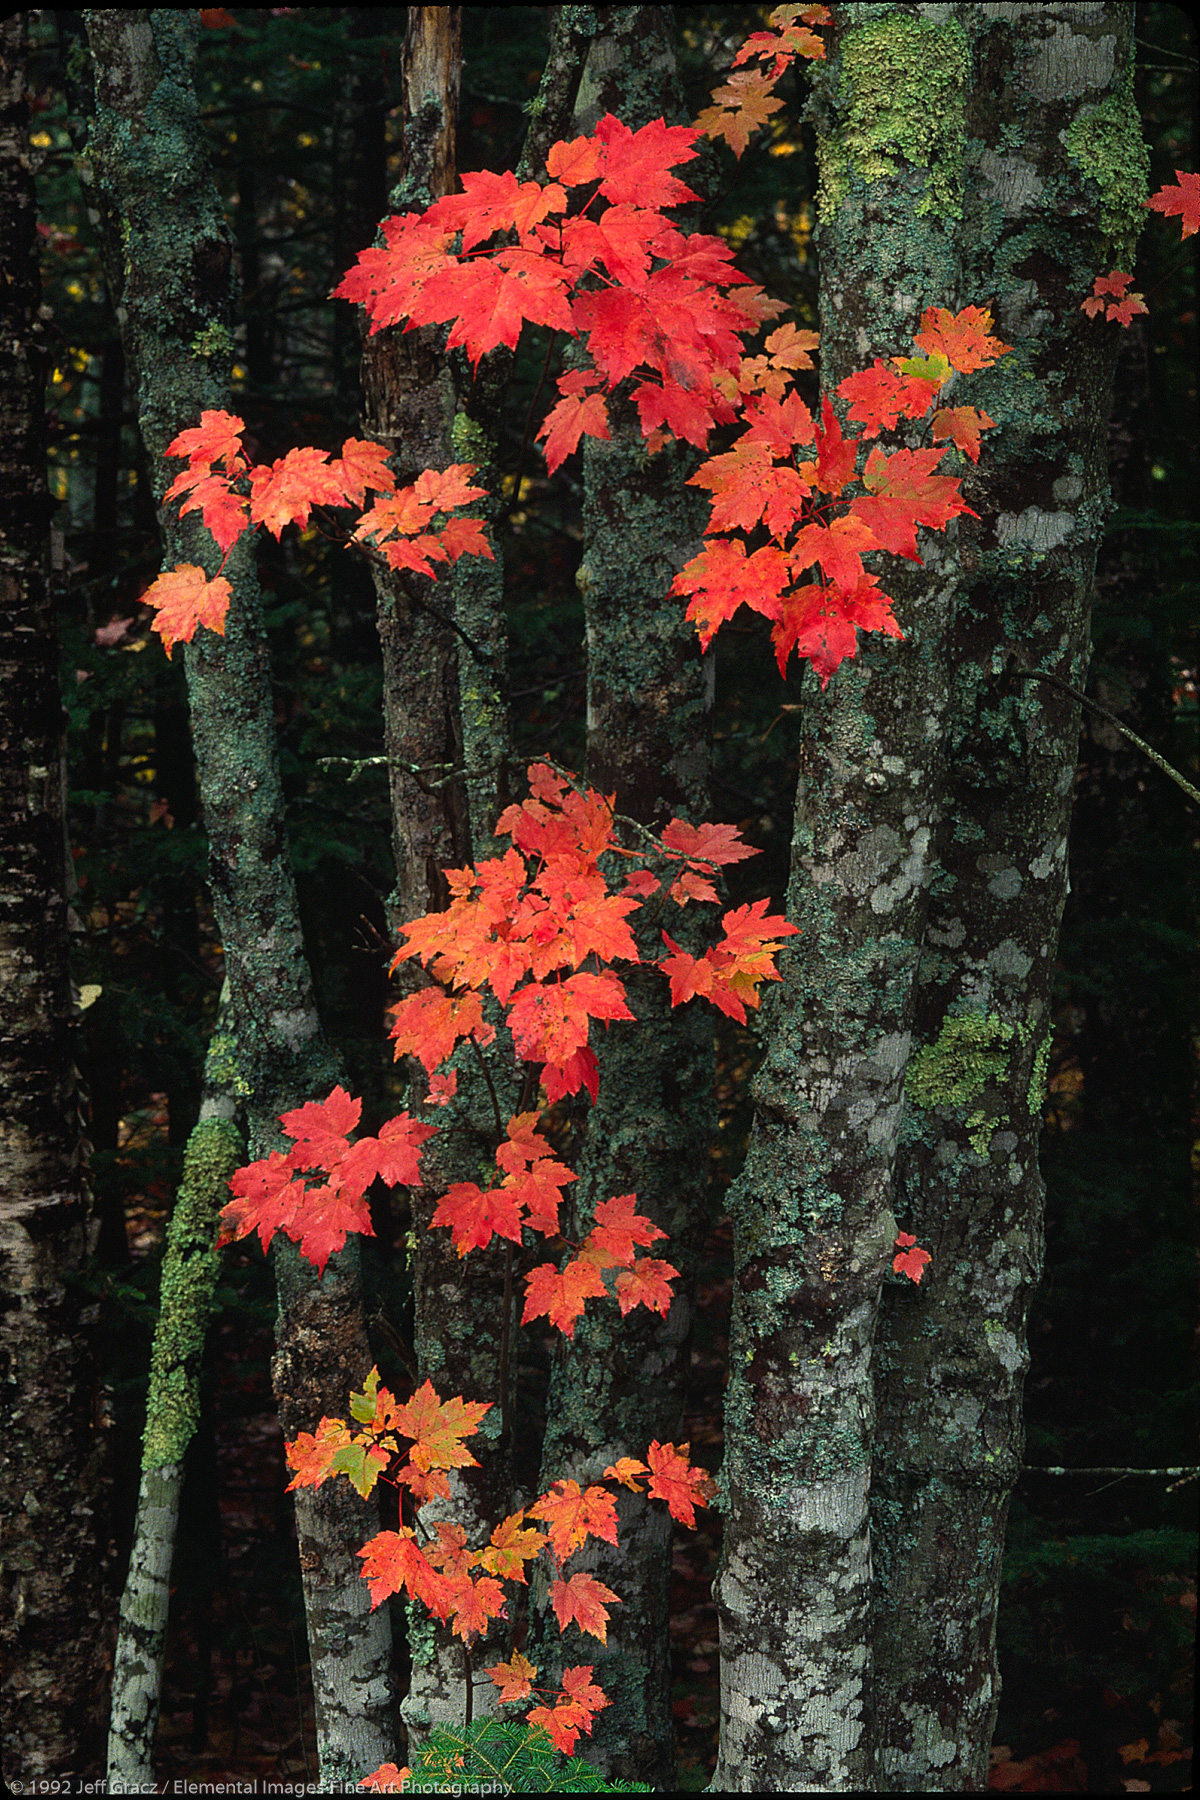 Maple tree trunks with fall foliage | Acadia National Park | ME | USA - © © 1992 Jeff Gracz / Elemental Images Fine Art Photography - All Rights Reserved Worldwide